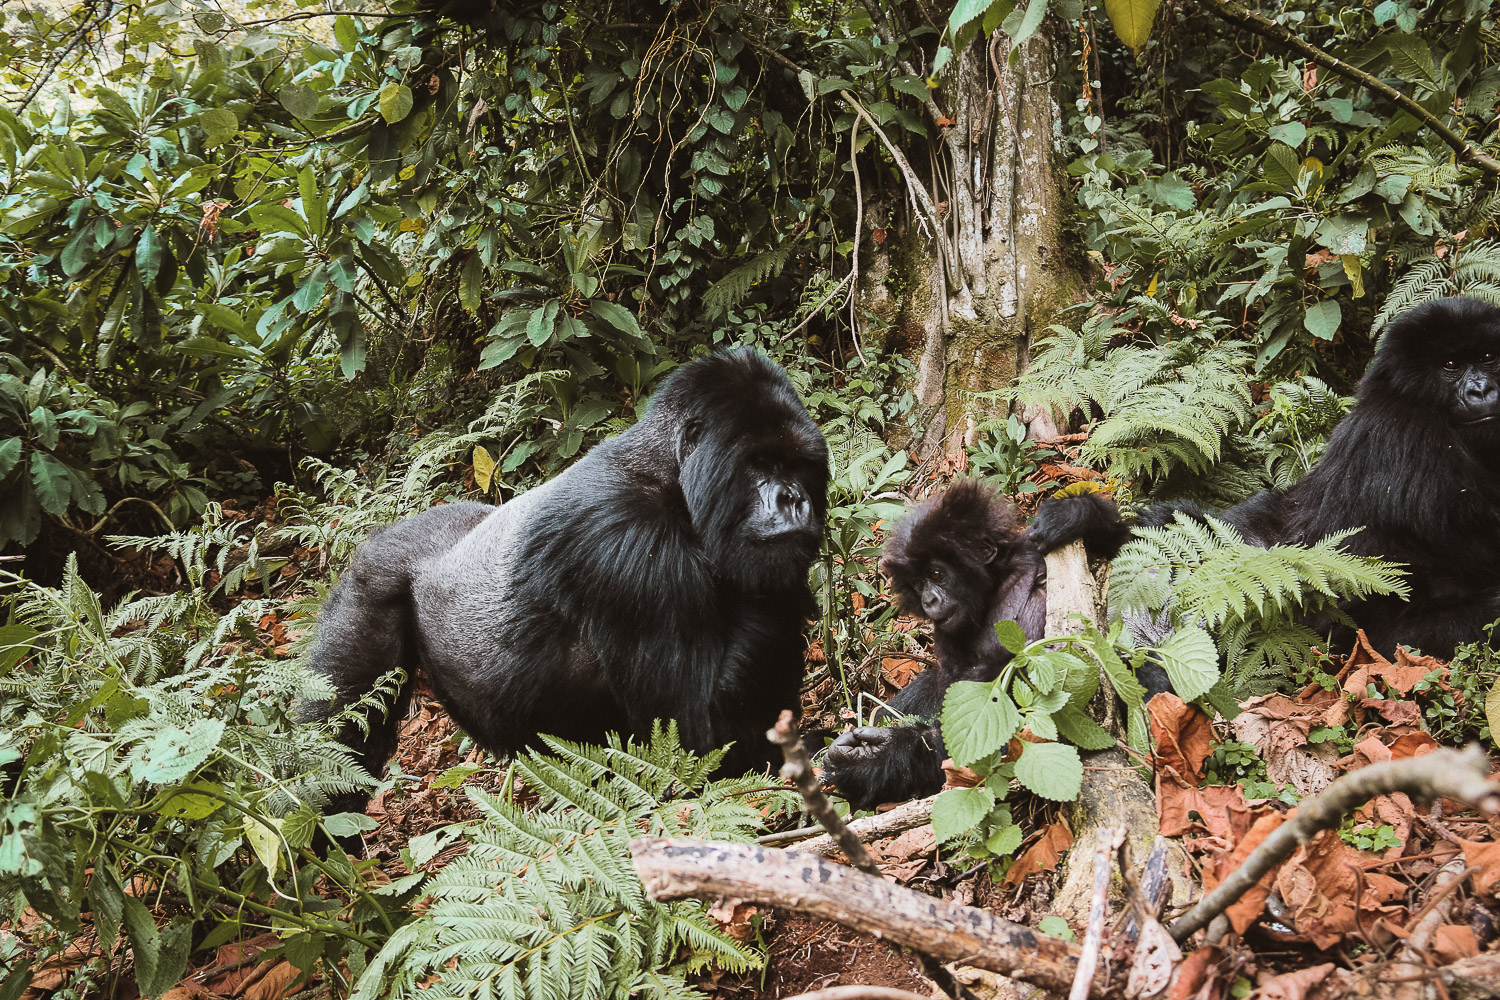 Silverback Mountain Gorilla in Parc National des Volcans